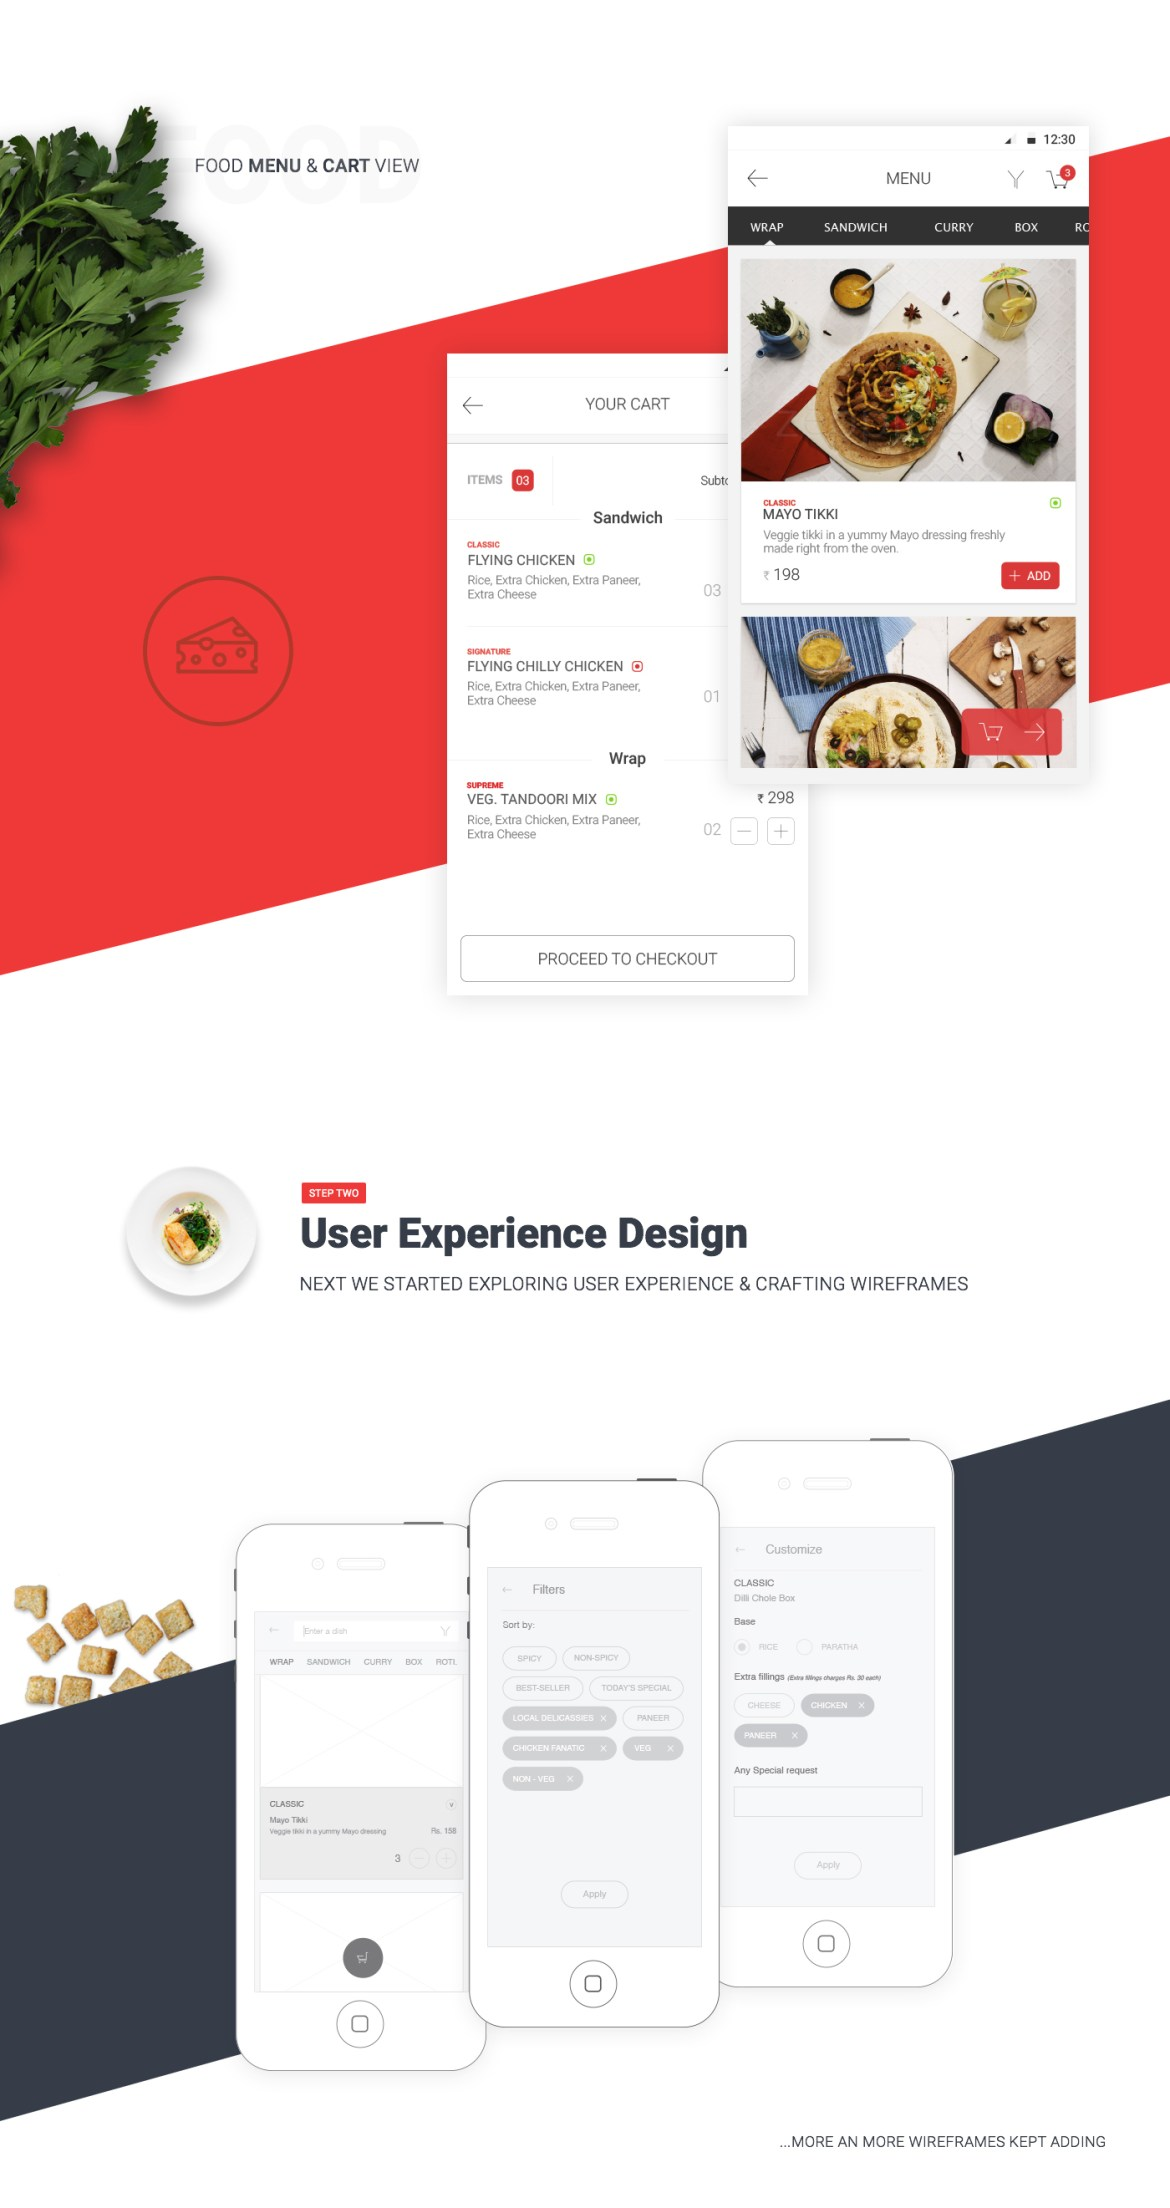 a8fd1b30774141.564d7fa8e5393 - Inspiration UX design - Food site